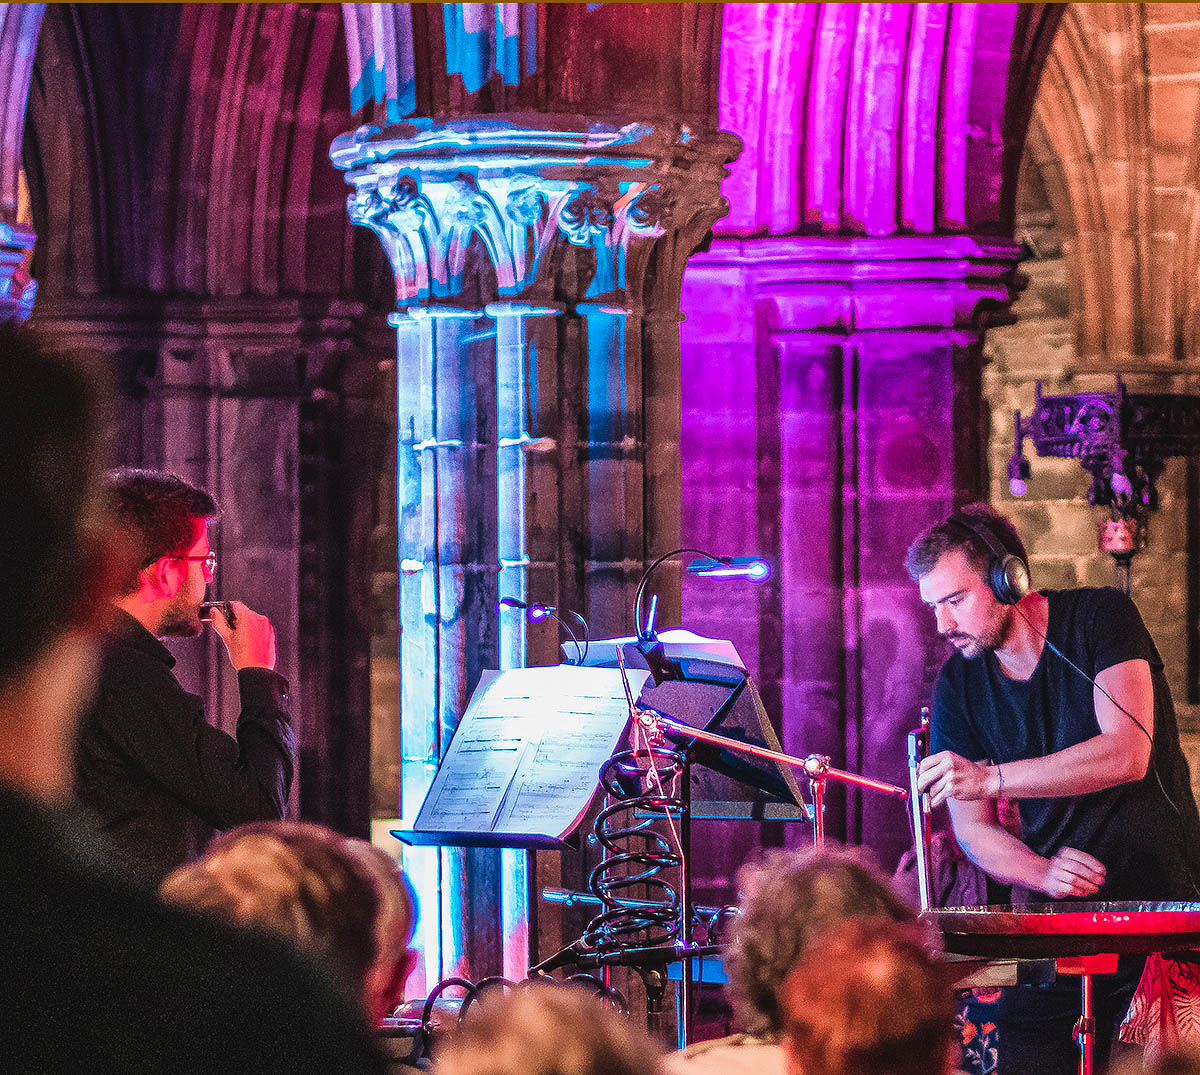 Dhatu by Edwin Hillier Performed at Glasgow Cathedral Festival 2019. Image credit David Lee / GCF